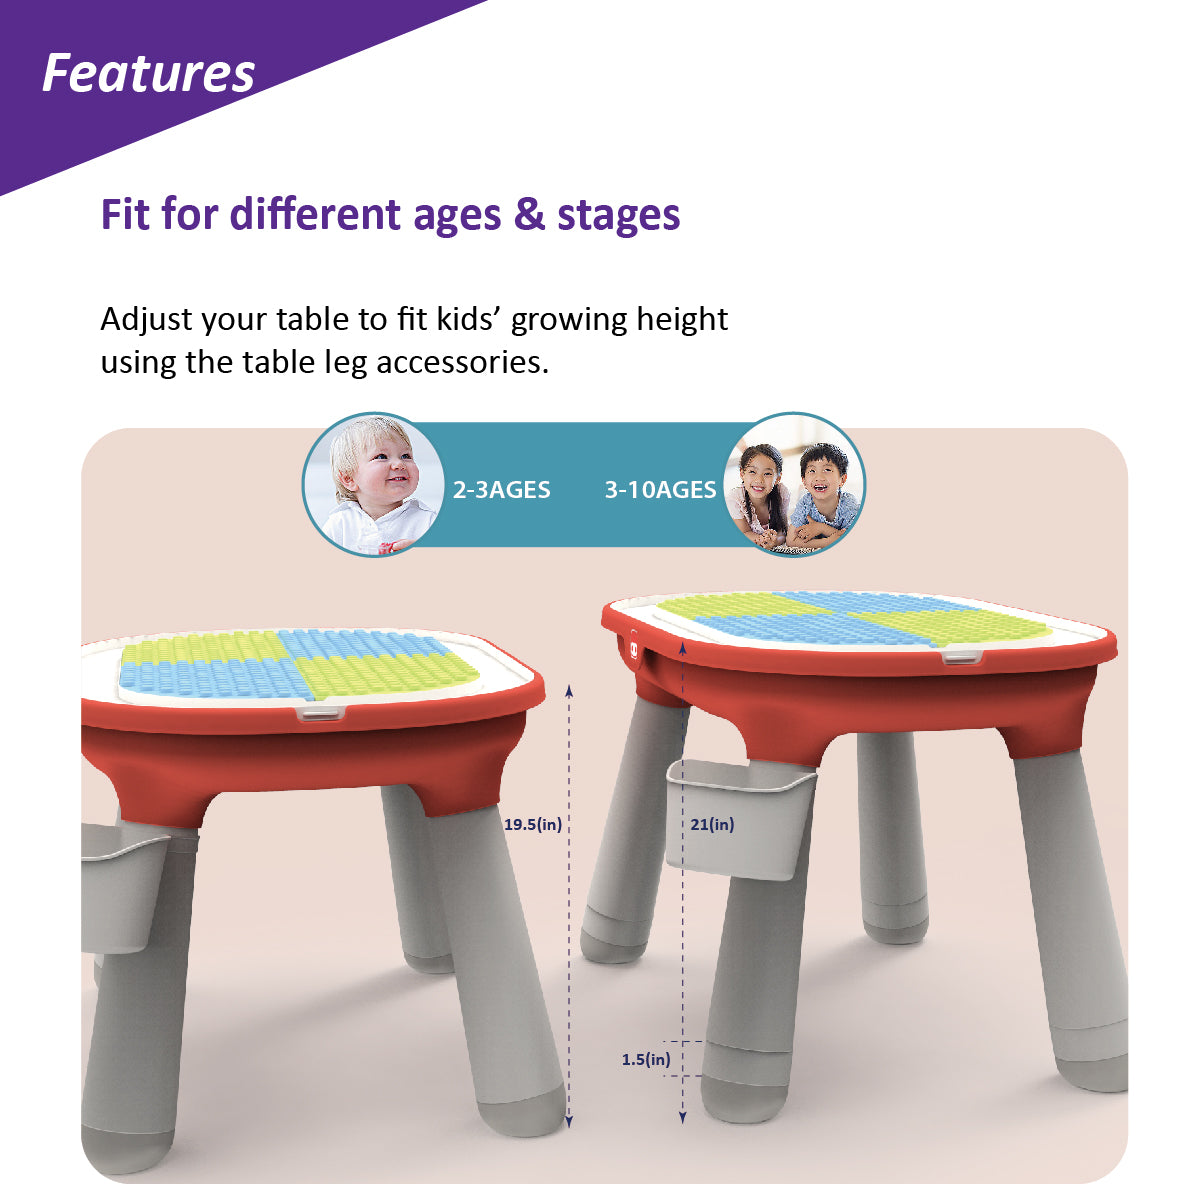 Fit for different ages & stages (Adjust your table to fit kids' growing height using the table leg accessories.)